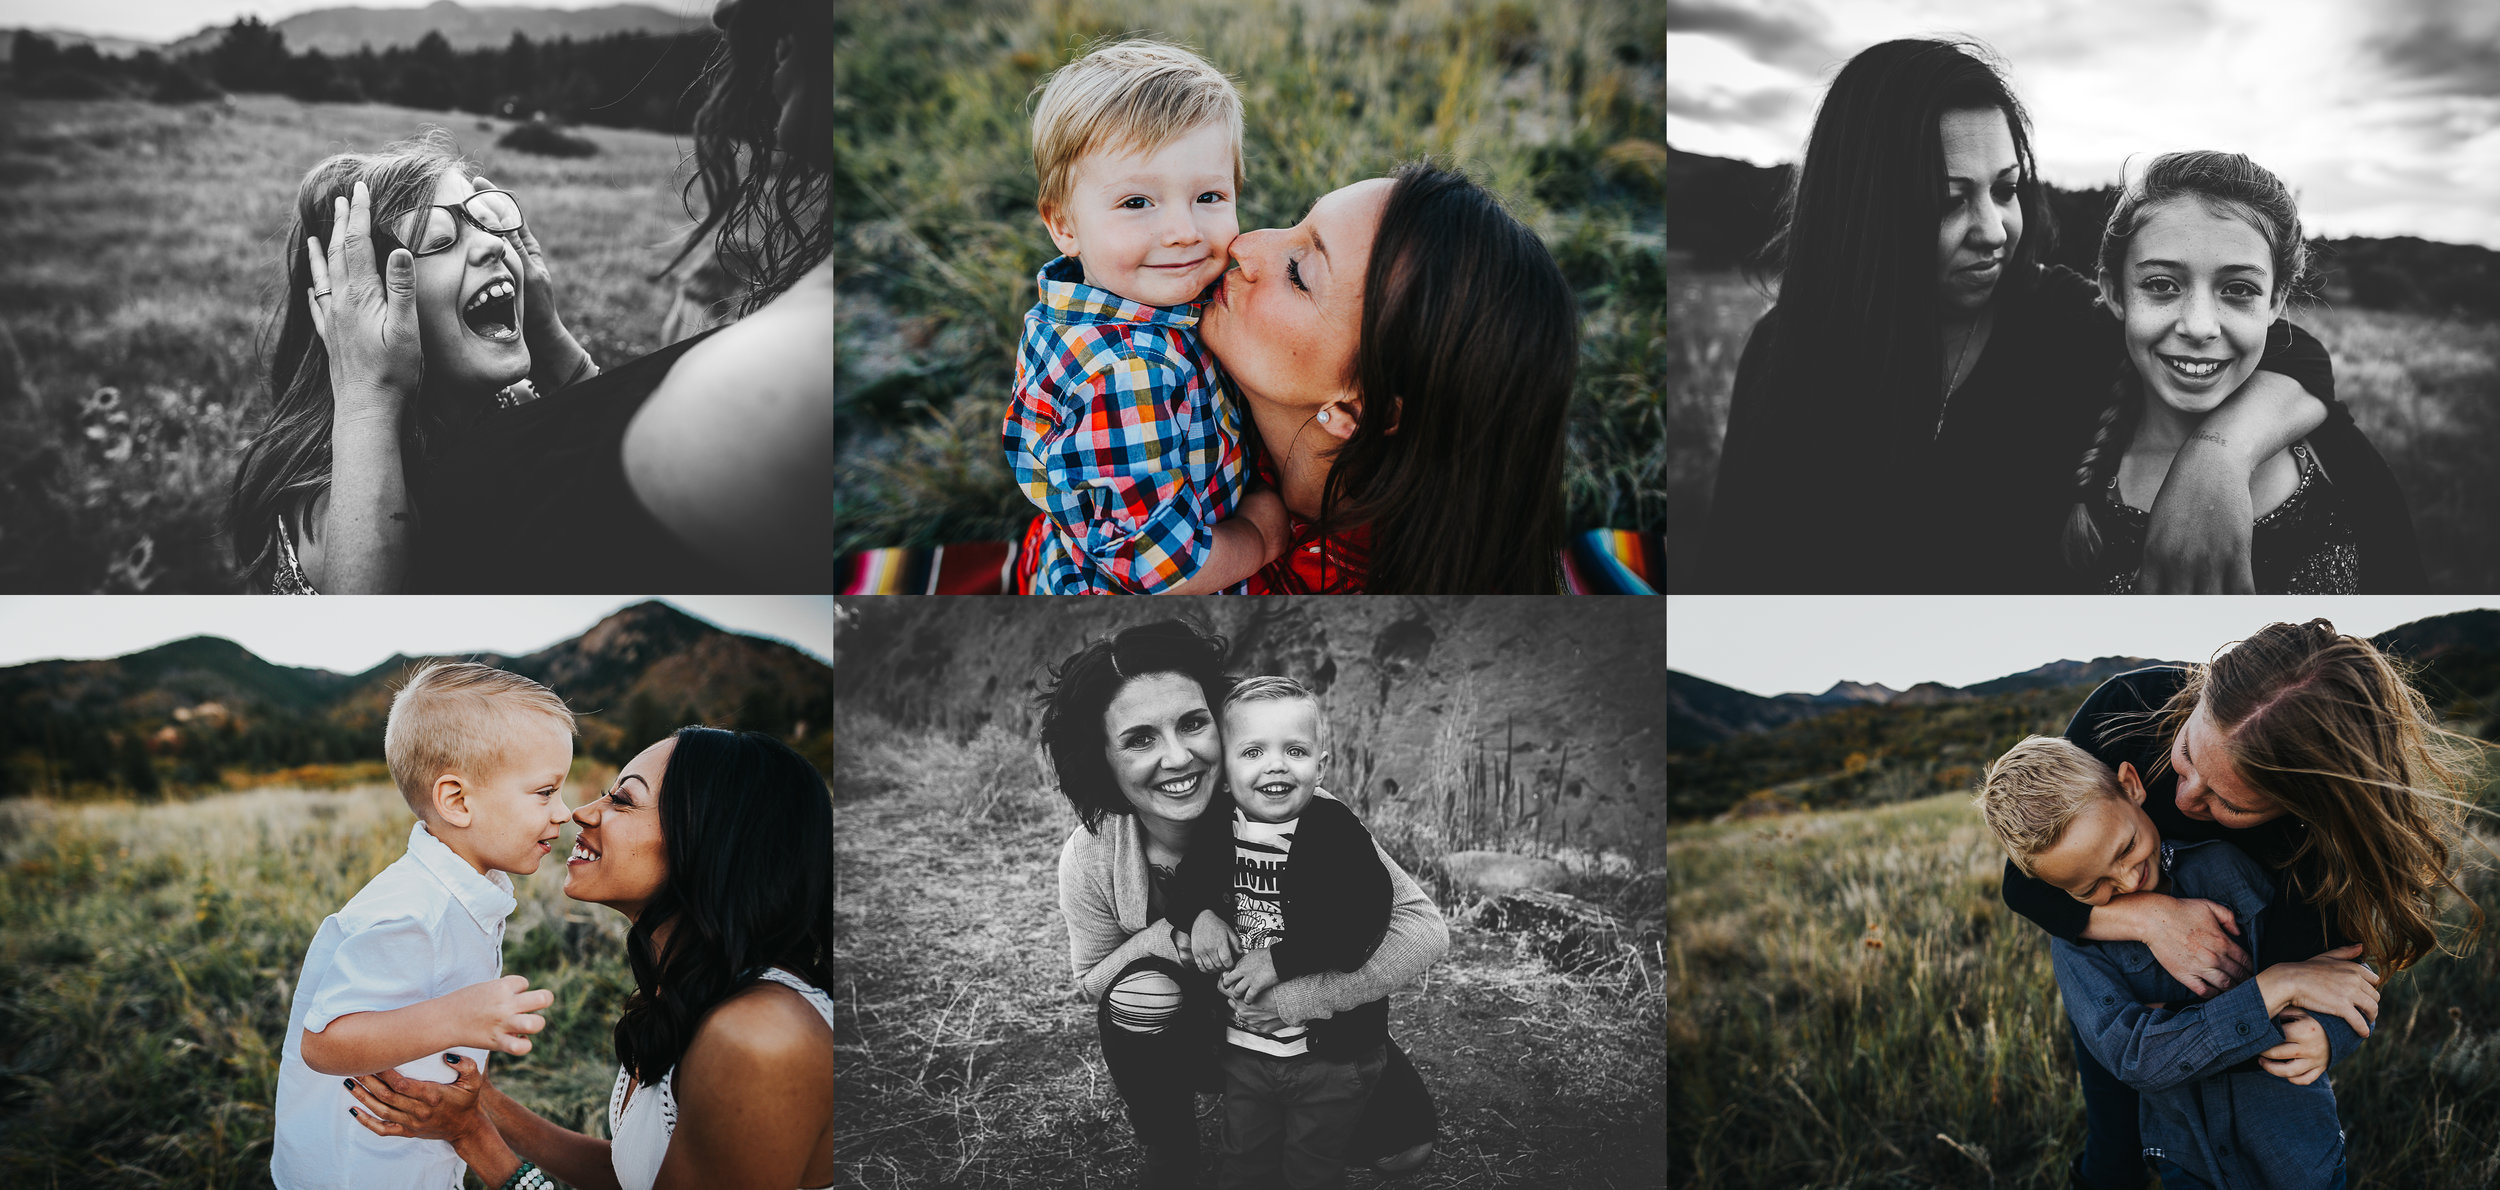 Colorado Springs photographer captures the love and connection between mothers and their children for Mothers Day.